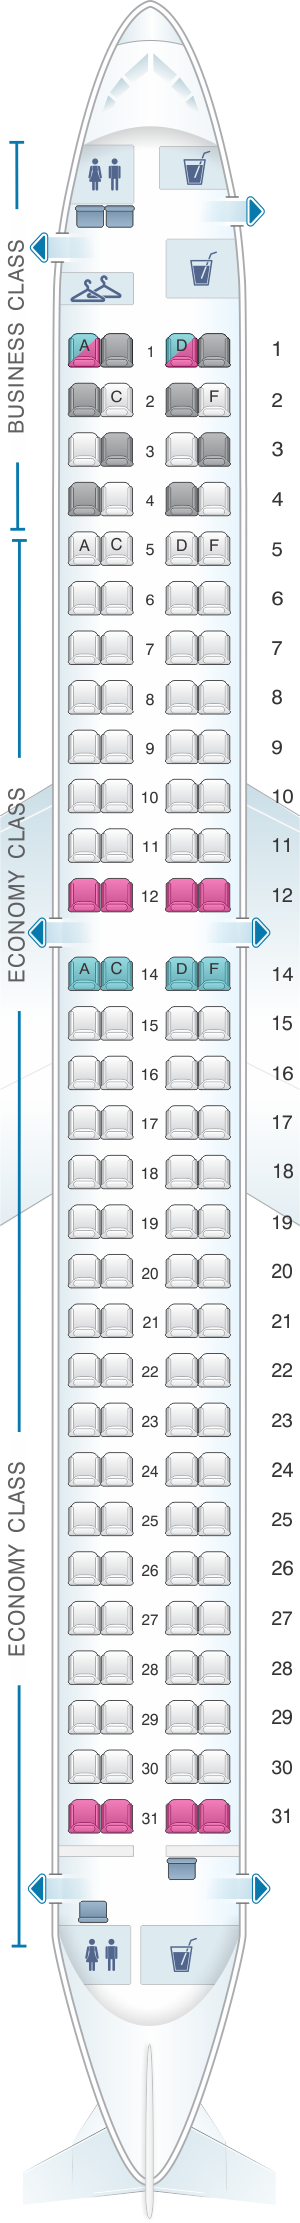 Seat map for Austrian Airlines Embraer 195